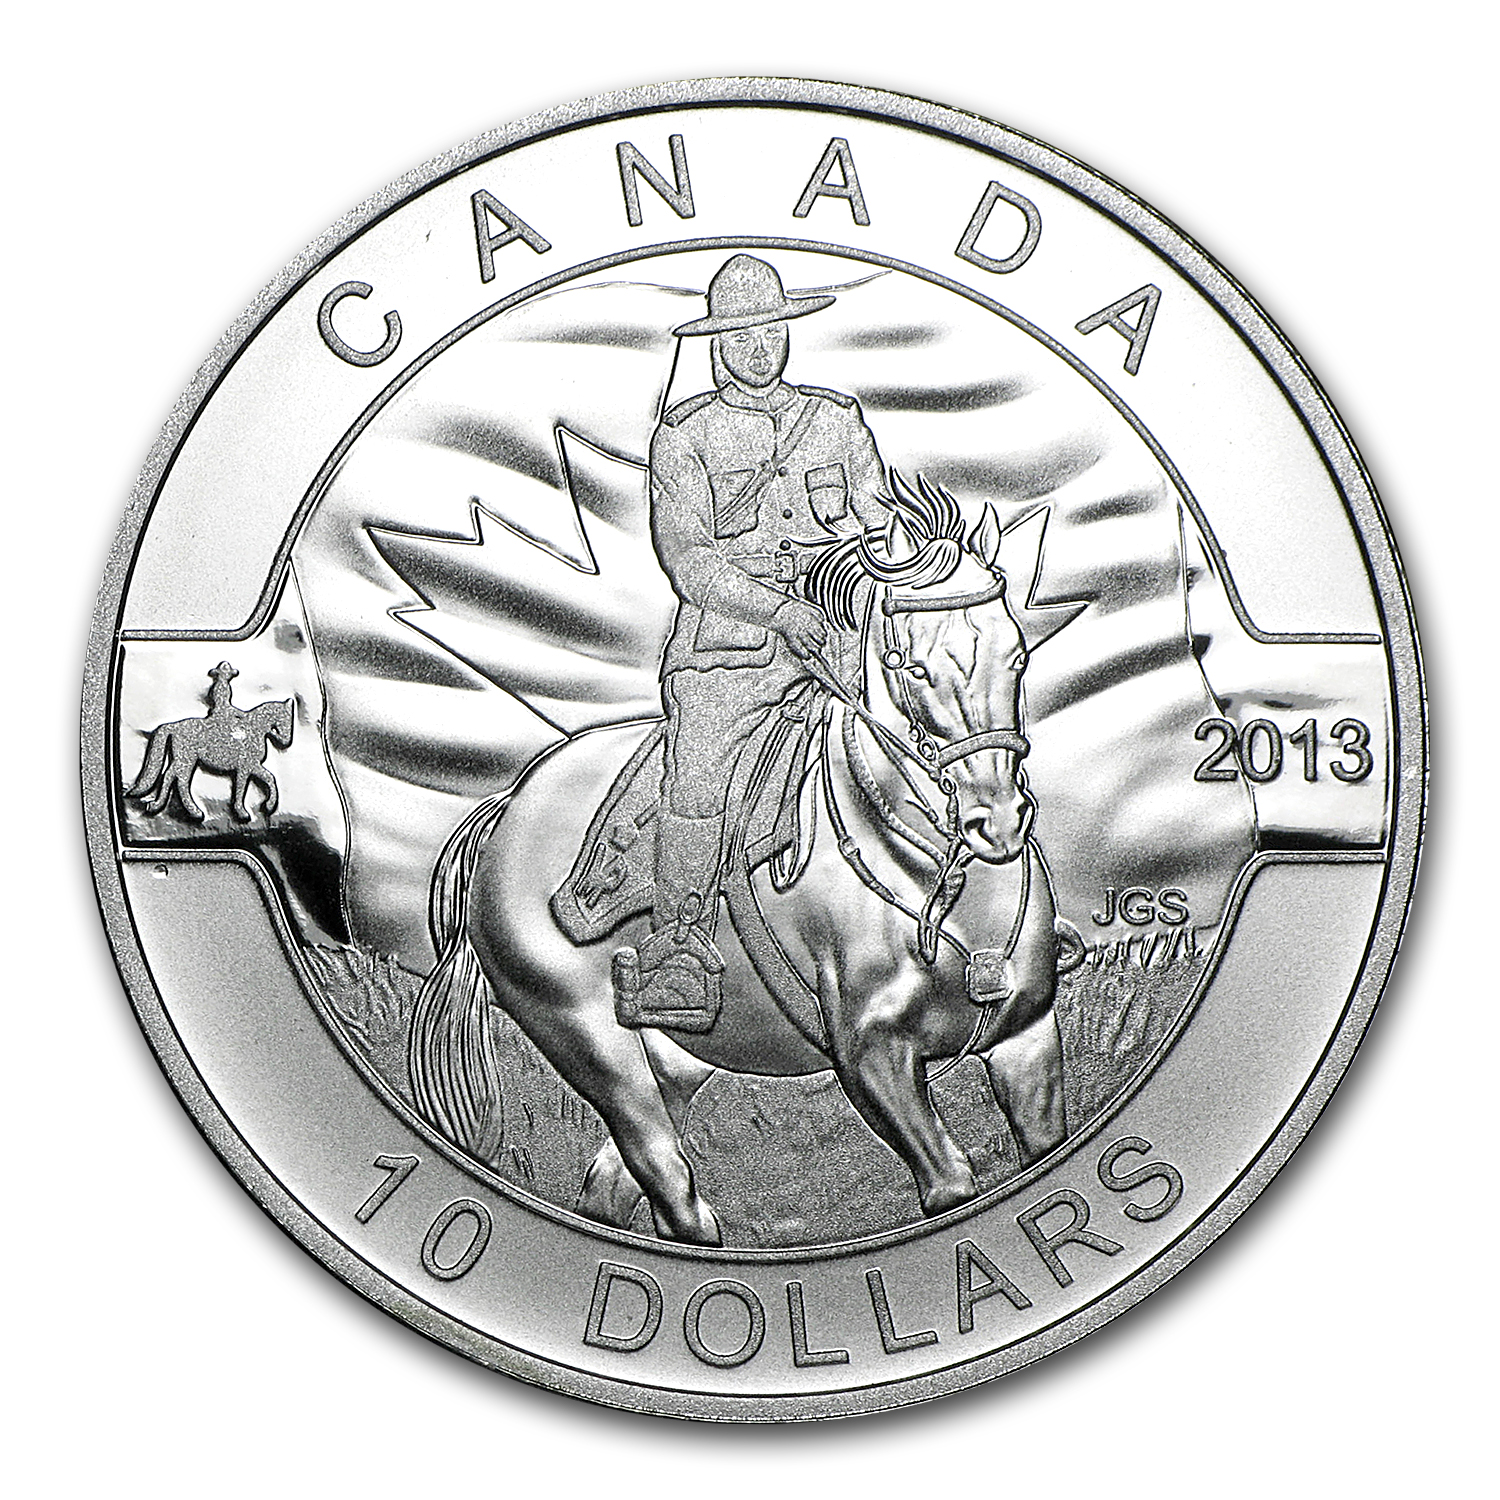 2013 Canada 1/2 oz Silver $10 Royal CAN Mounted Police (Capsule)